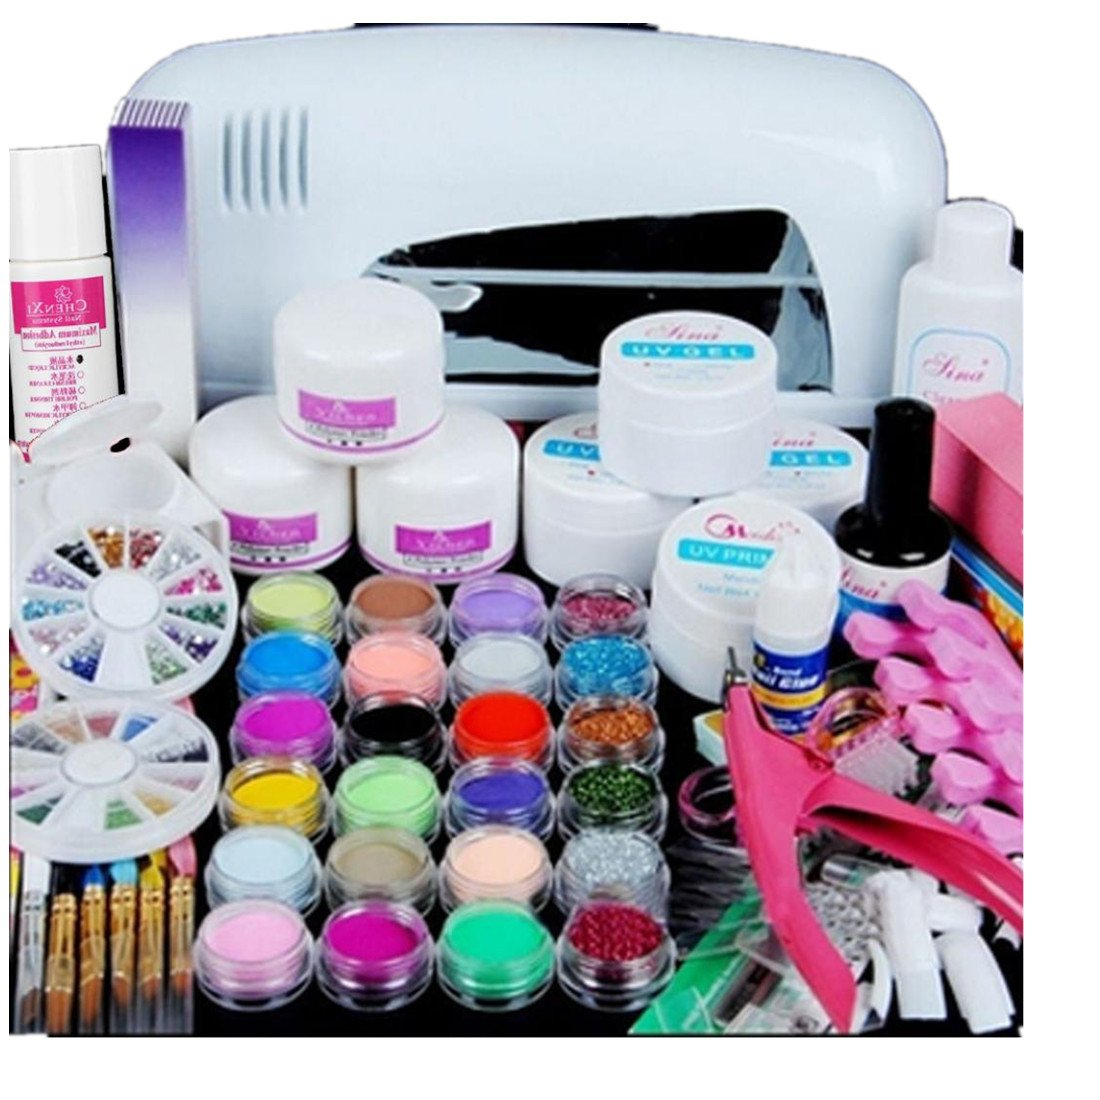 Nail Art Tools Kit Set, 9W UV White Dryer lamp, Kingfansion 24 color Acrylic Powder Nail Art Kit Gel Tools